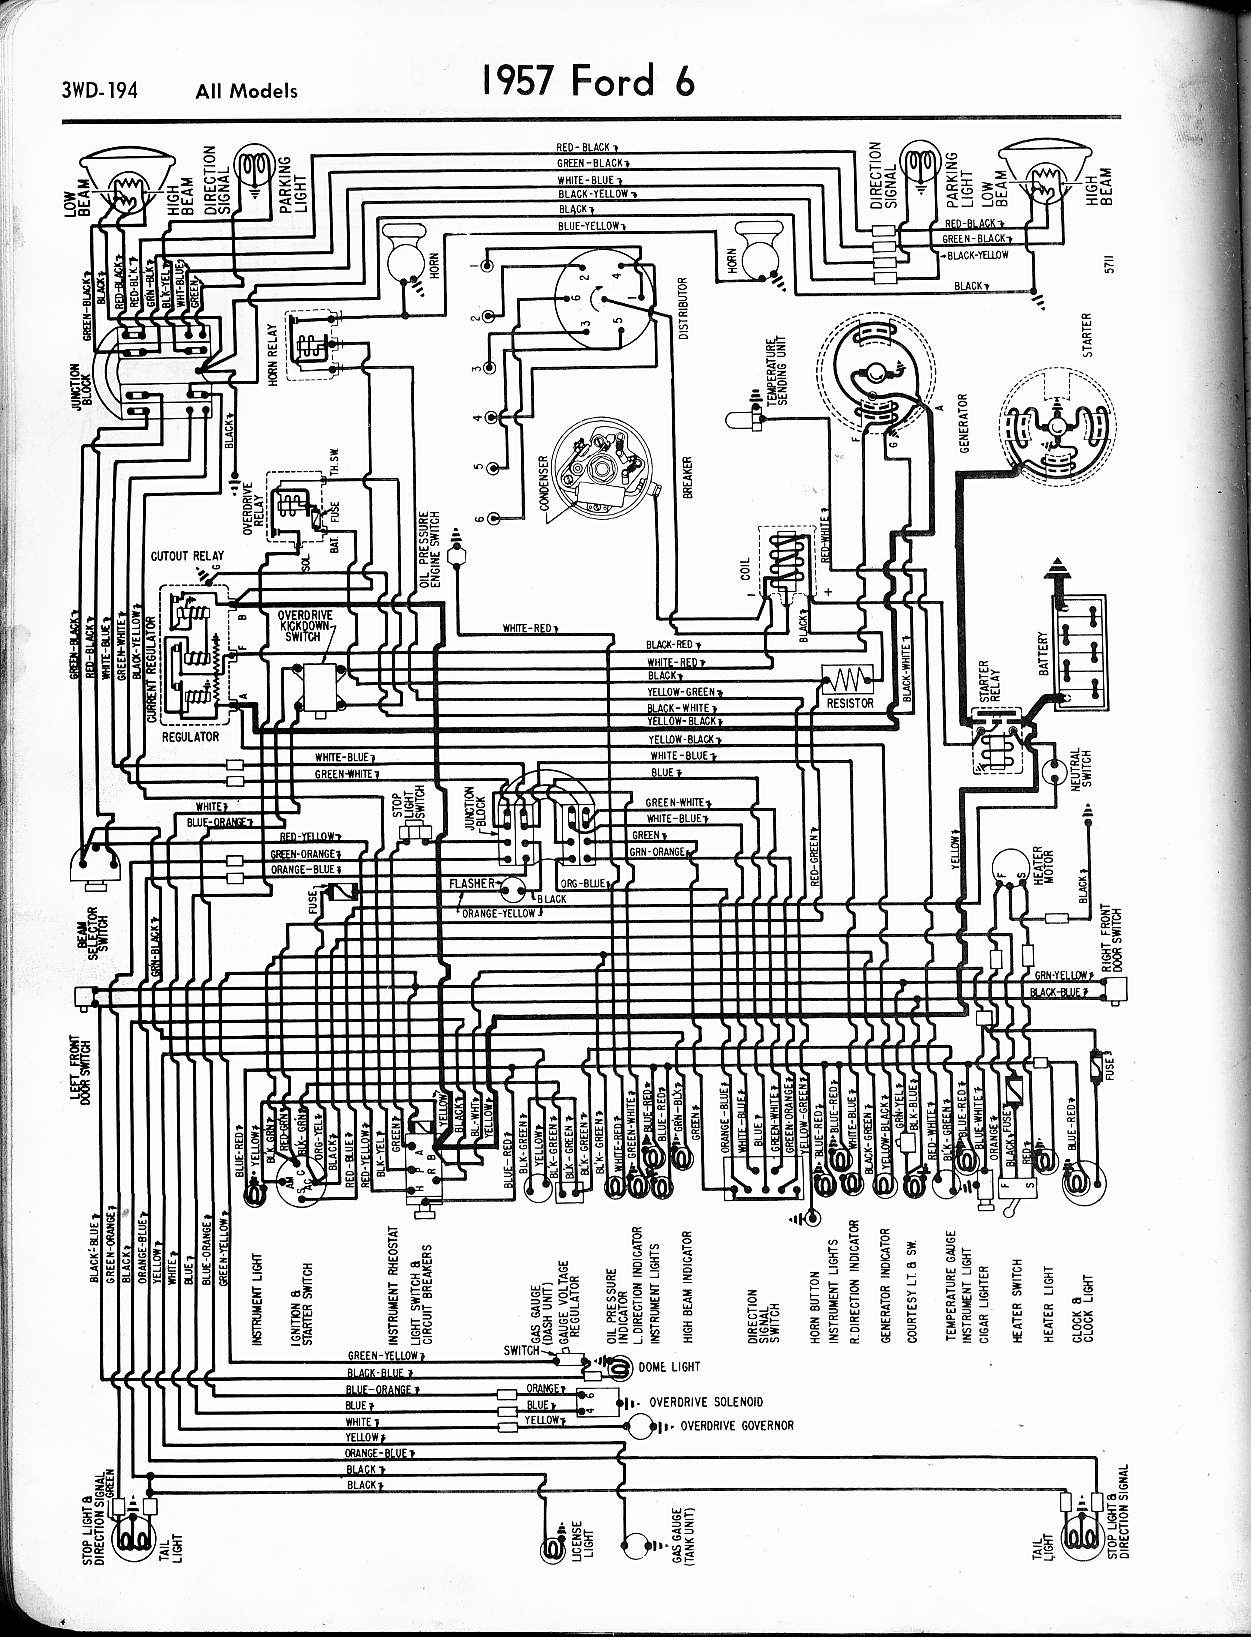 Awesome Ford Ignition Resistor Wire Photo - Electrical and Wiring ...